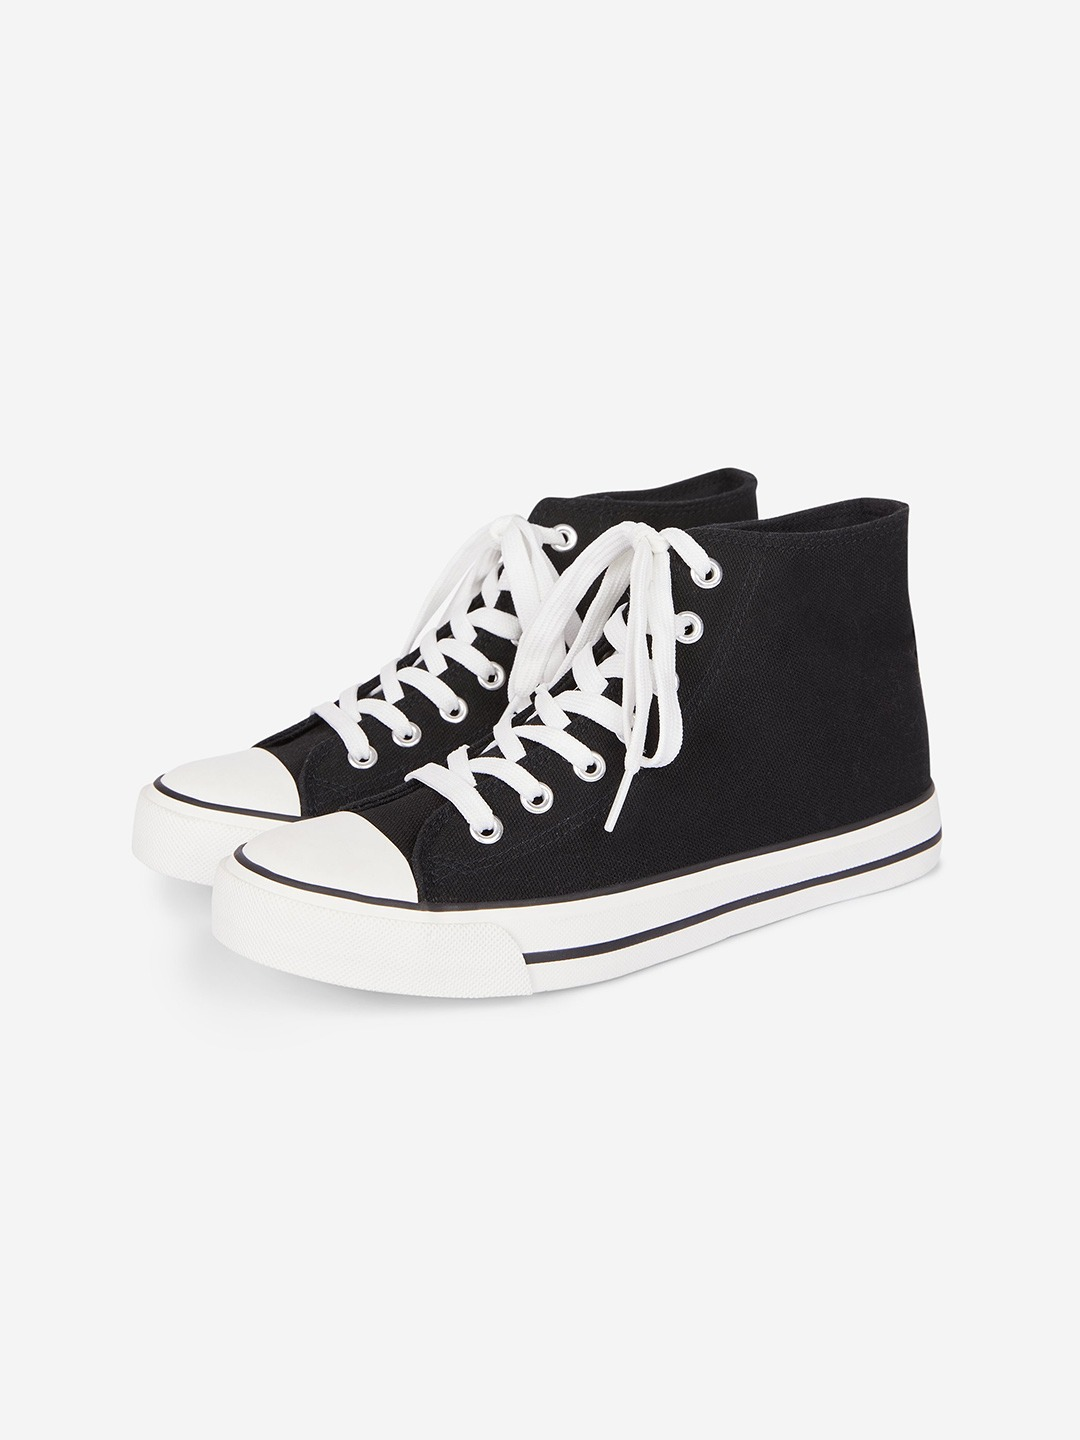 Black Solid Mid-Top Sneakers